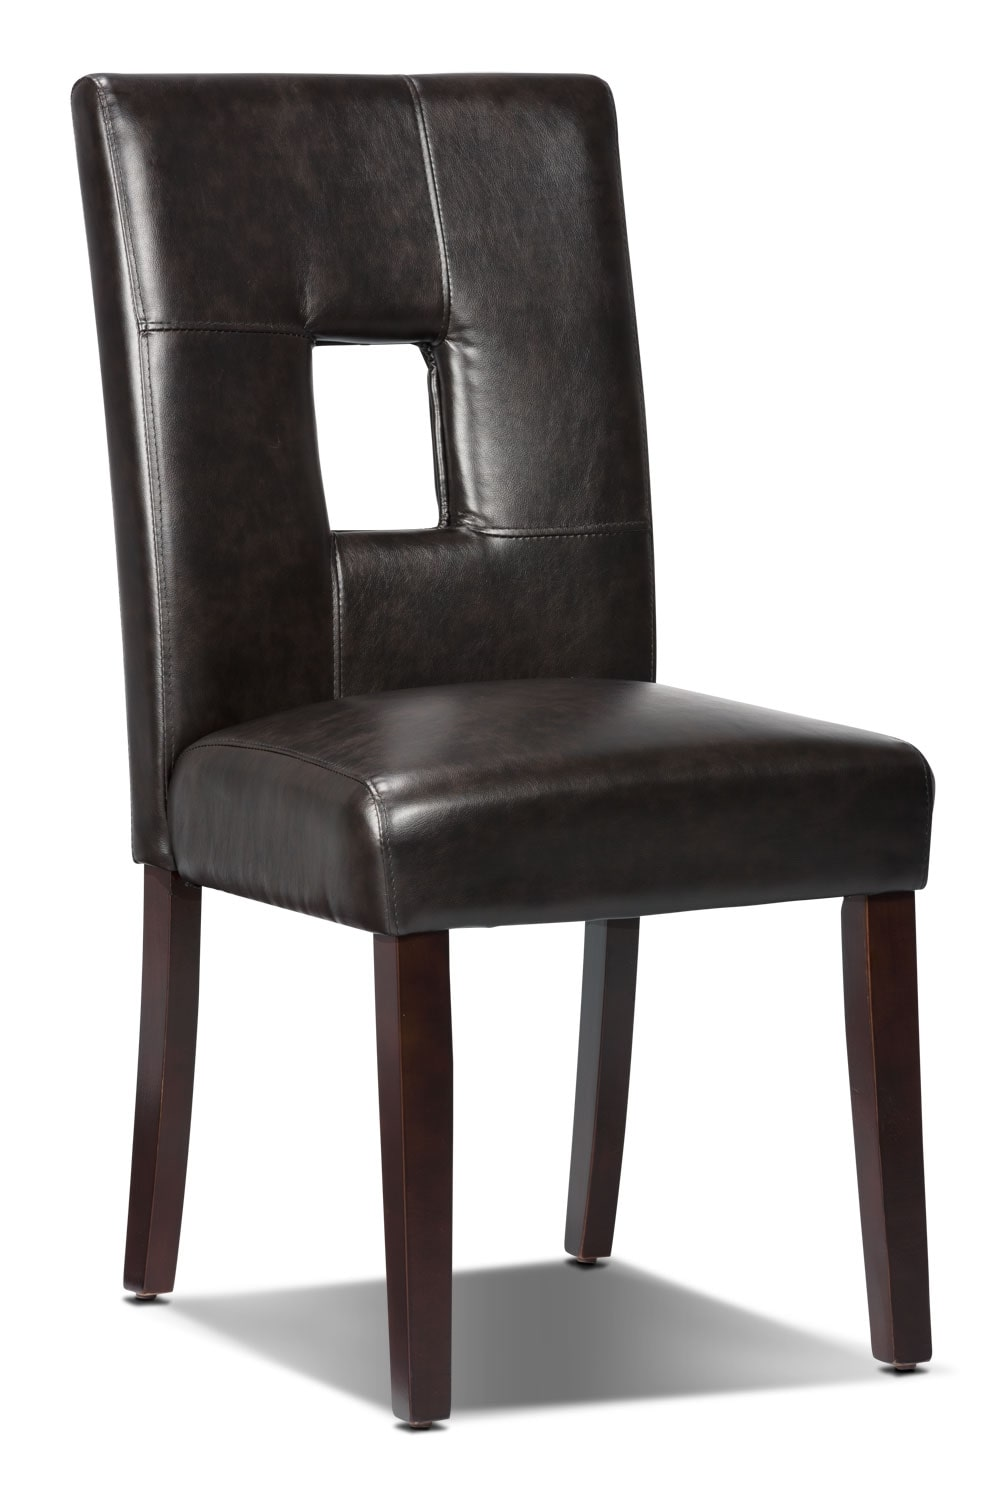 Mckena faux leather dining chair brown the brick for Brown leather dining room chairs